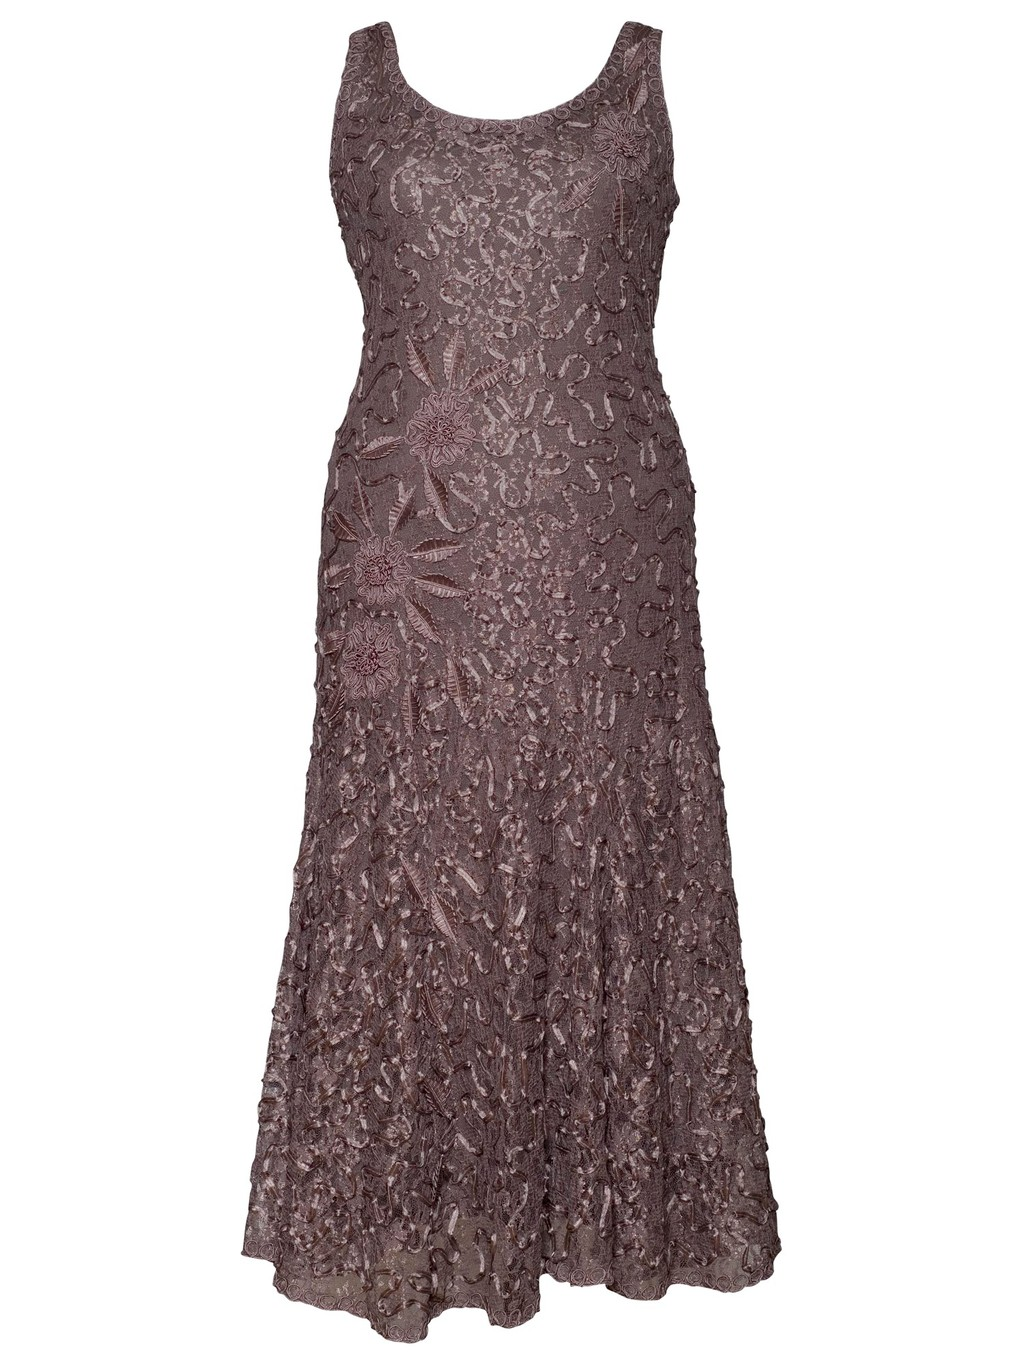 Lace Cornelli Embroidered Dress - neckline: round neck; sleeve style: sleeveless; style: maxi dress; length: ankle length; predominant colour: taupe; occasions: evening, occasion; fit: body skimming; fibres: nylon - mix; sleeve length: sleeveless; texture group: lace; pattern type: fabric; pattern: patterned/print; embellishment: applique; season: a/w 2013; wardrobe: event; embellishment location: all over